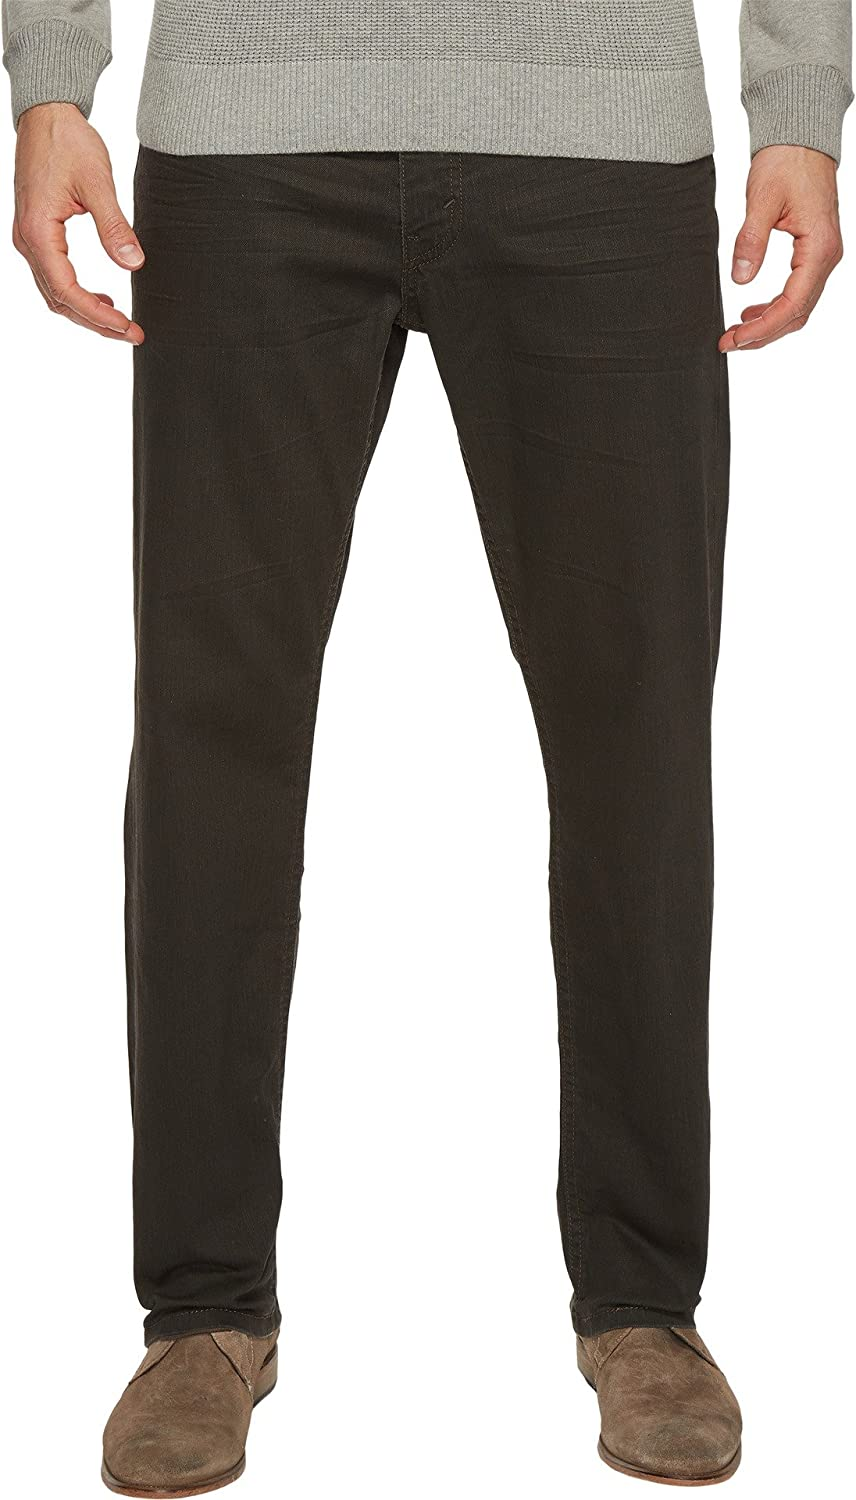 1c8597ab Cotton,Denim,Elastane,Twill Made in USA or Imported For the modern man,  style is as important as comfort. Step up your wardrobe with the Levi's®  541™ ...